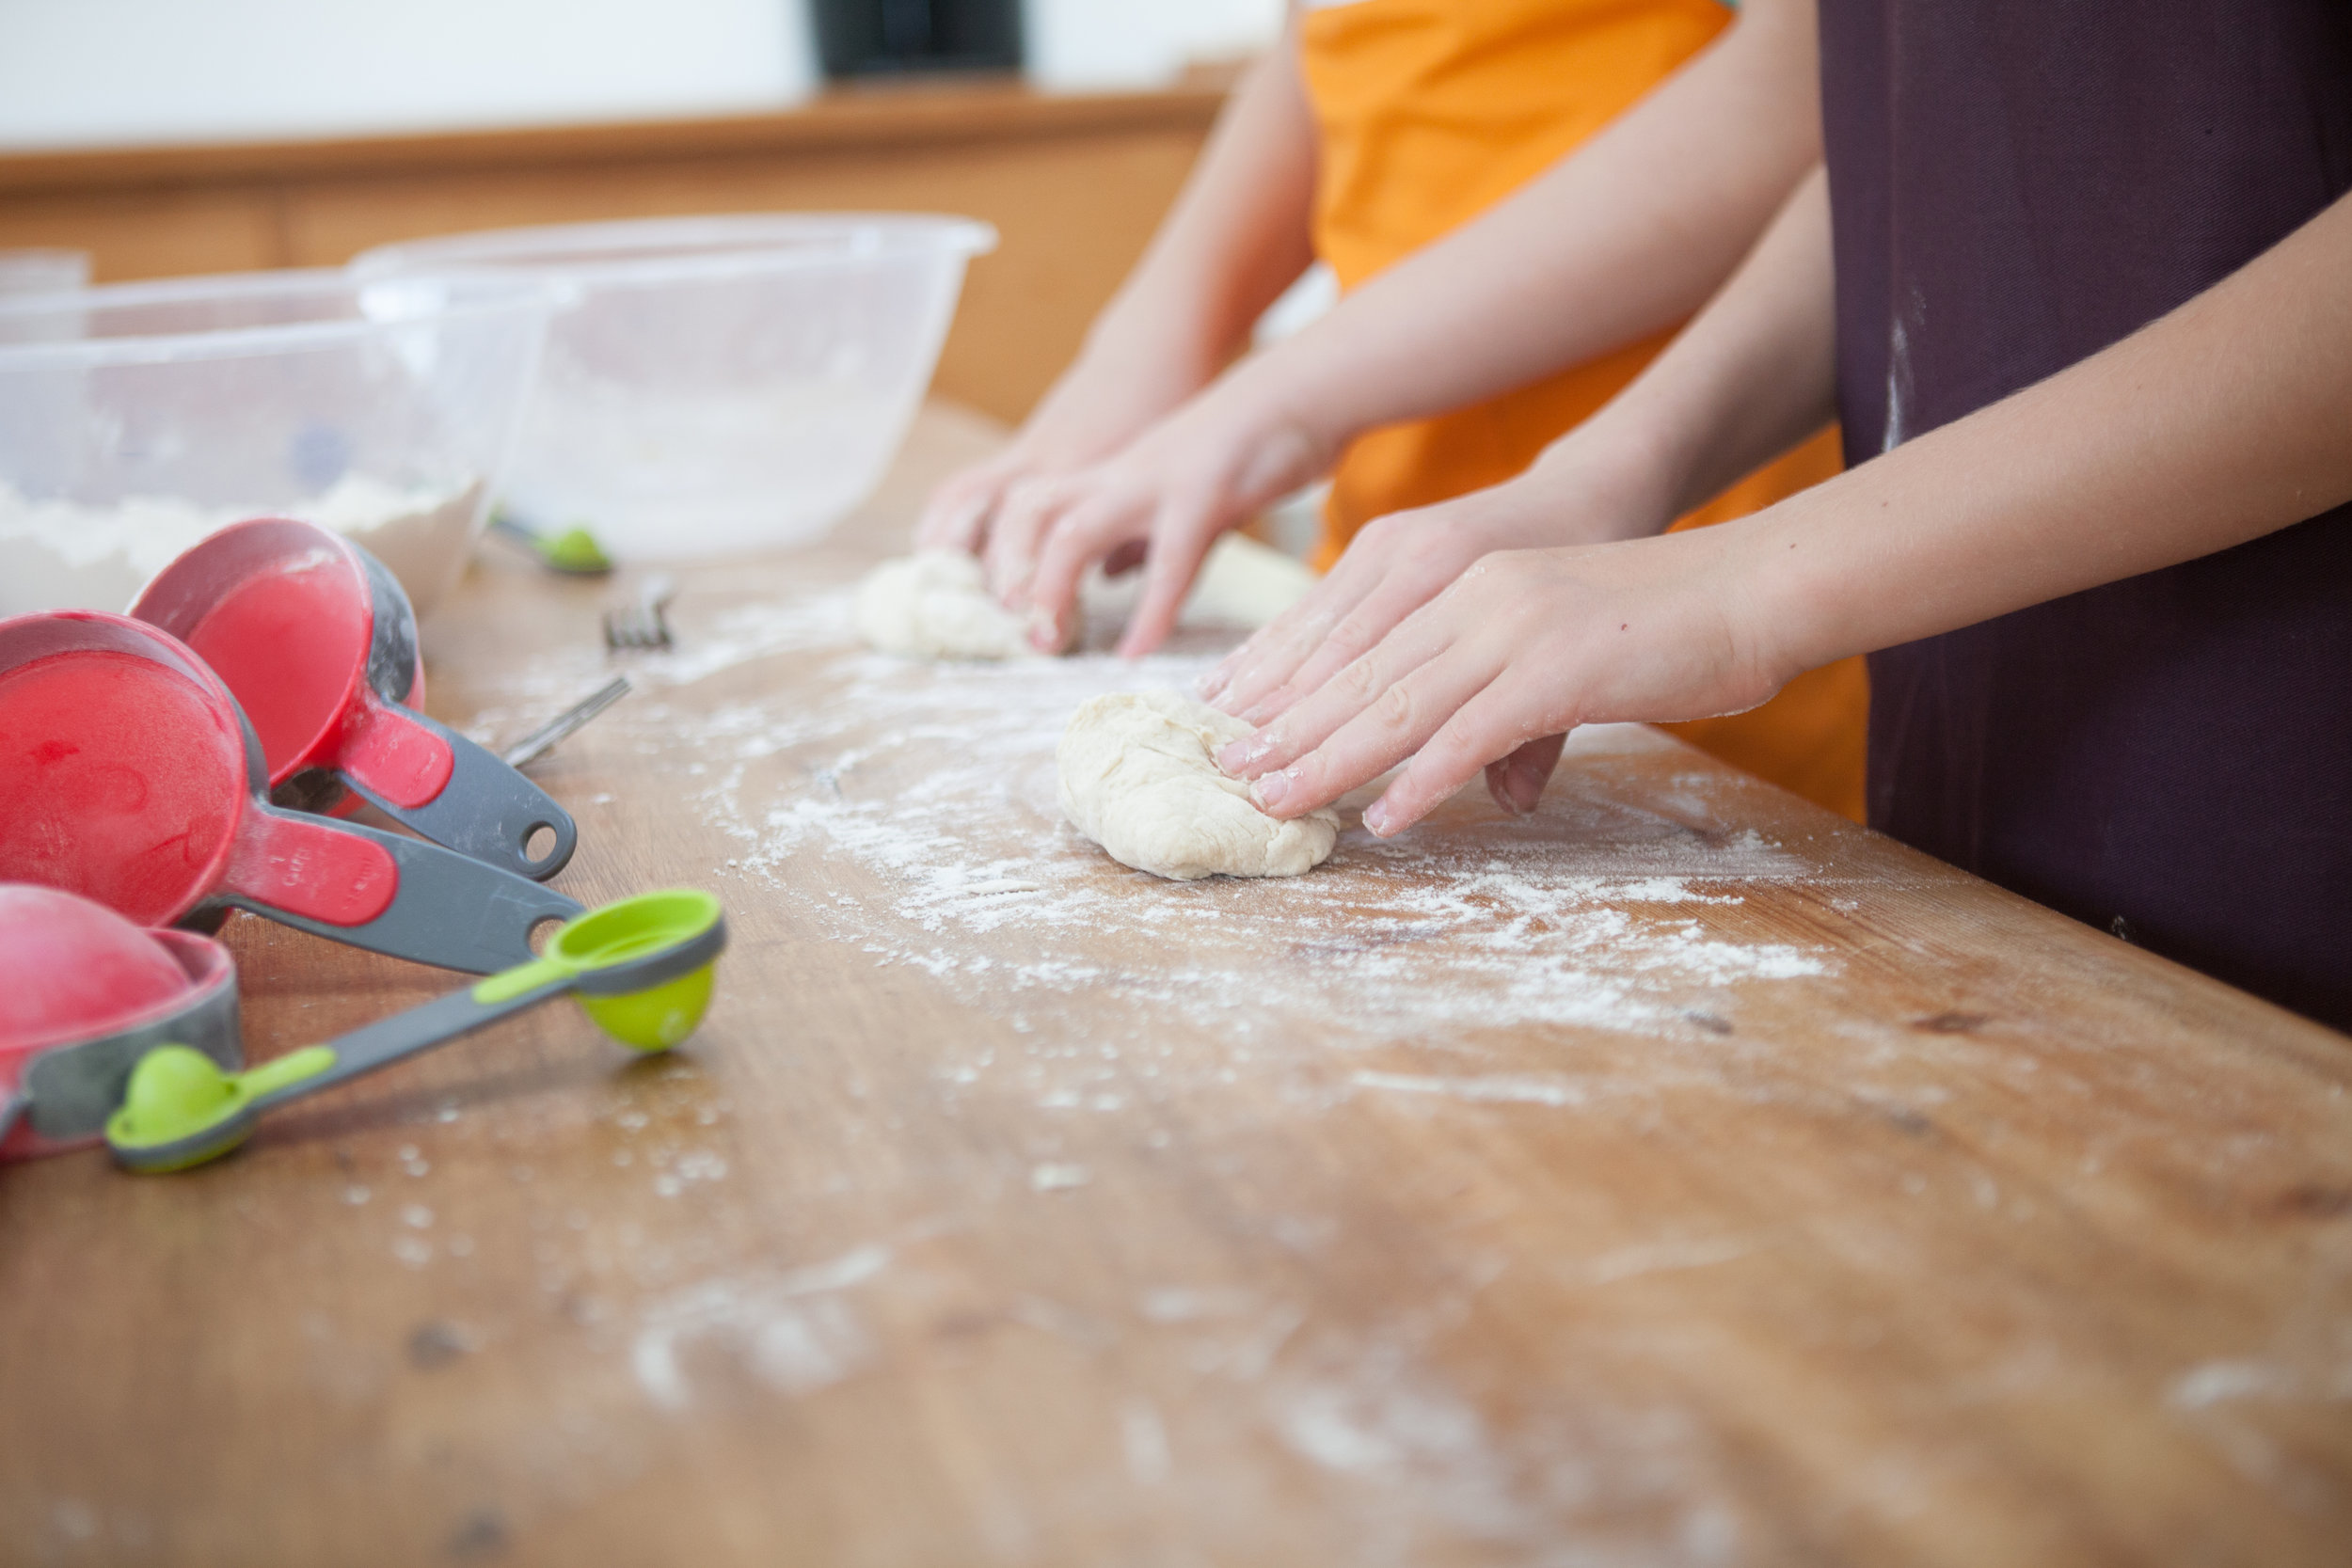 Our team is growing! - We are currently seeking class teachers to contribute to the success of our growing business. If you would enjoy working with children and have a passion for food, get in touch…